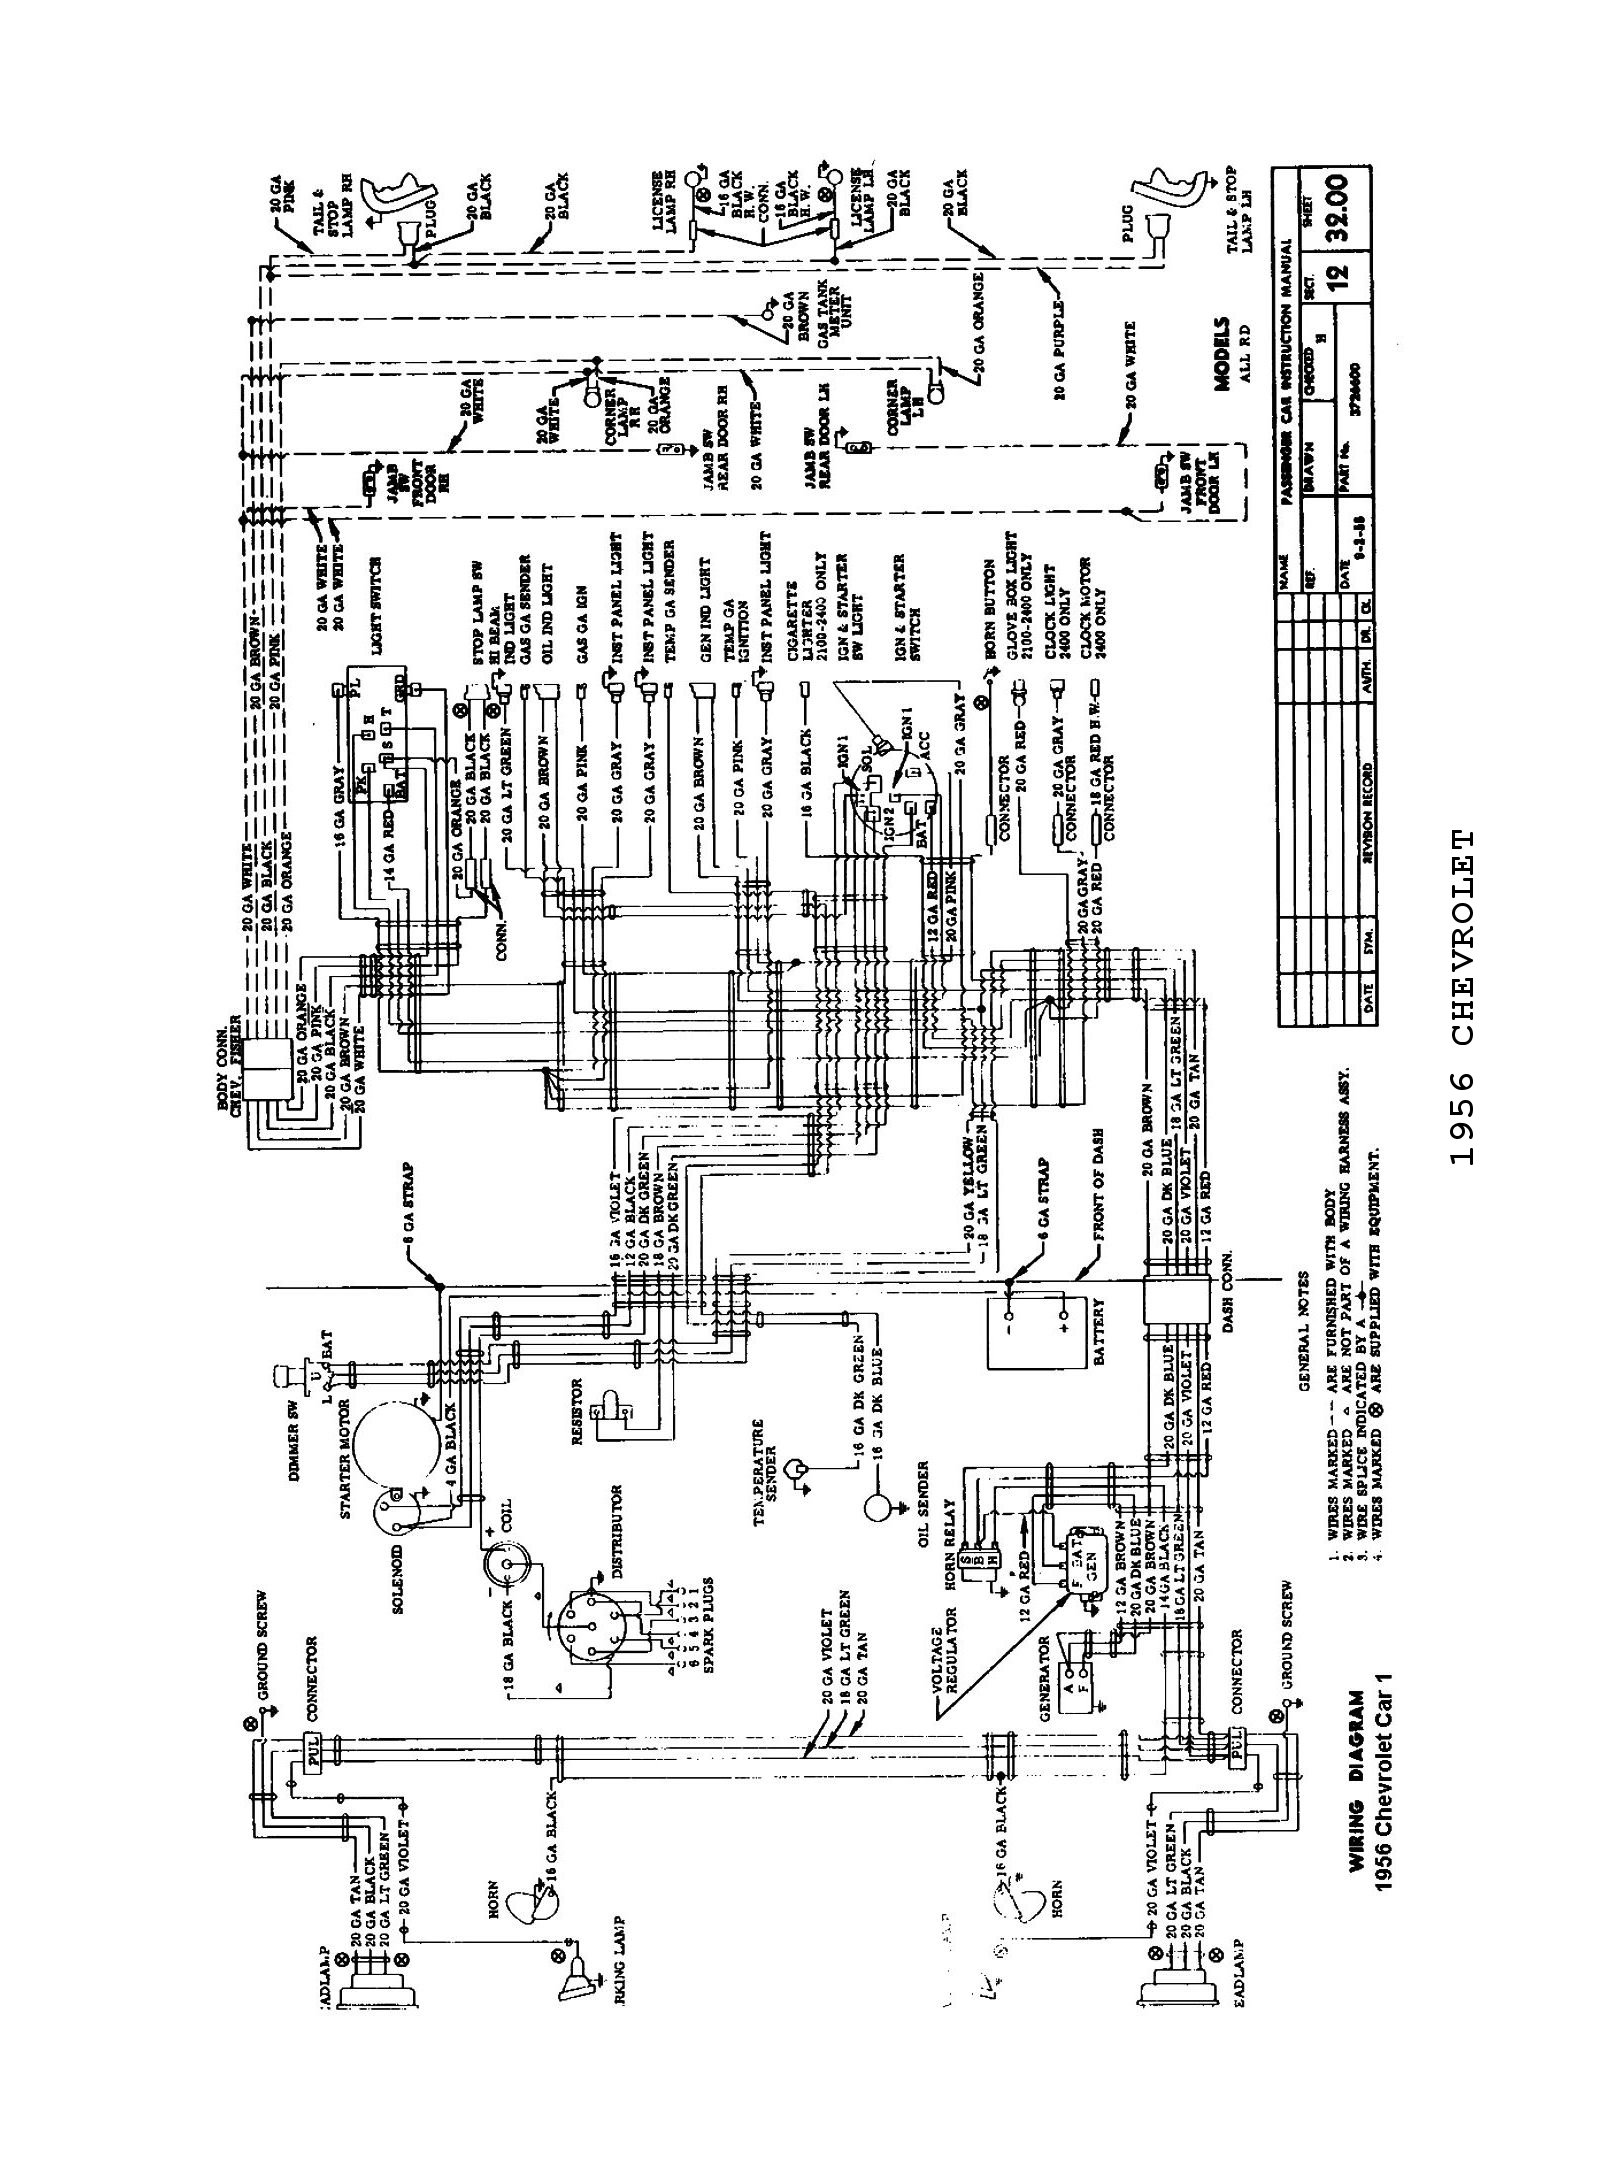 Windows Wiring Diagram Of 1957 58 General Motors All Models Browse Alternator Chevy Diagrams